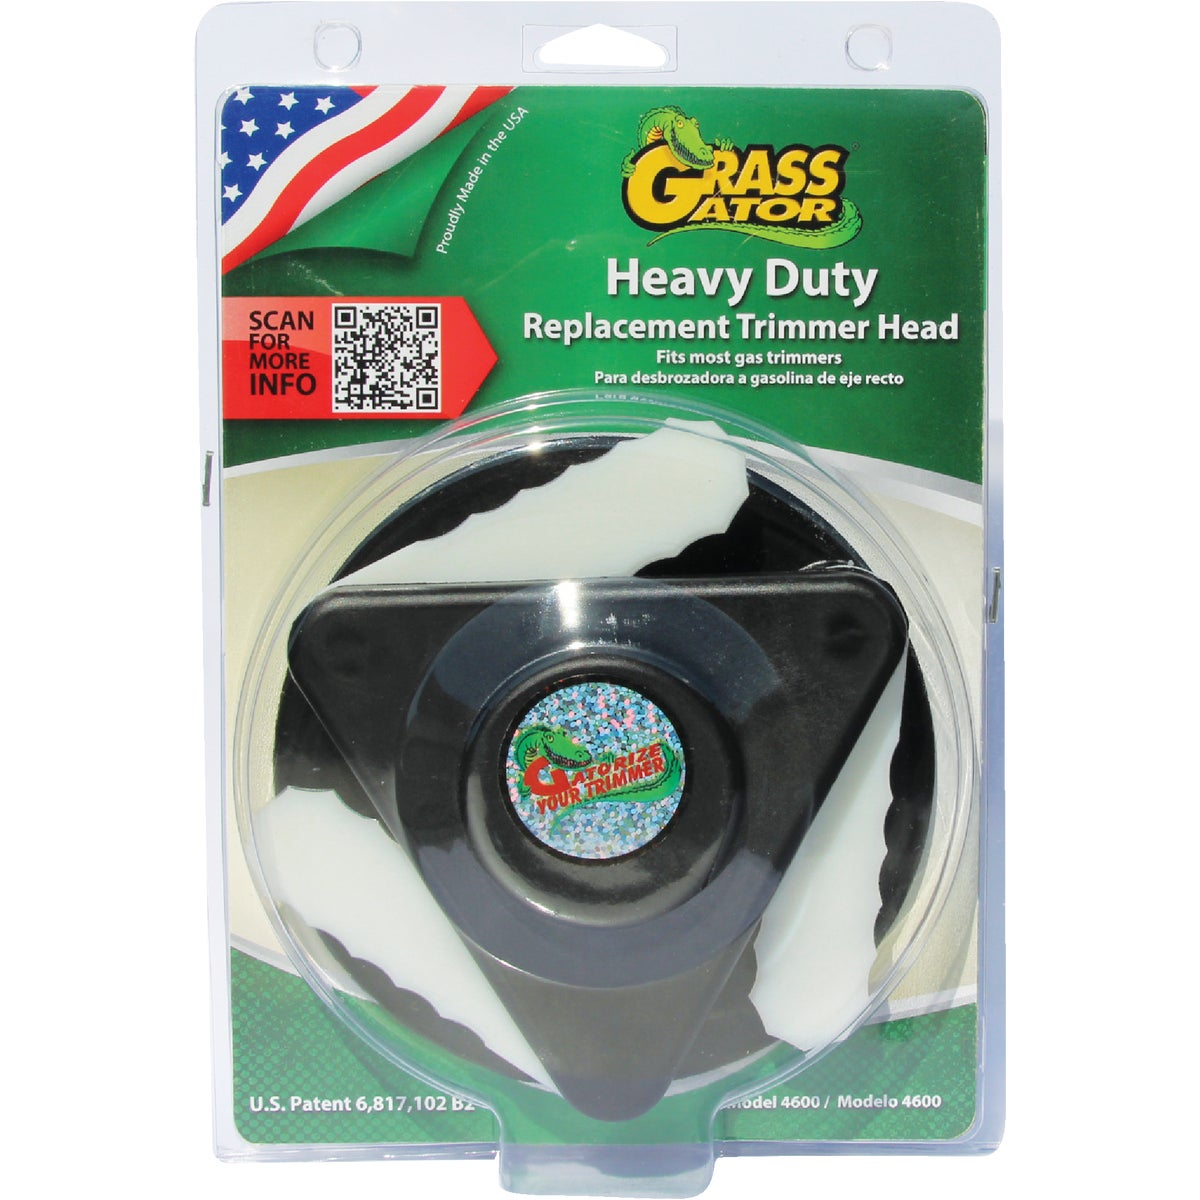 HV DUTY GAS TRIMMER HEAD